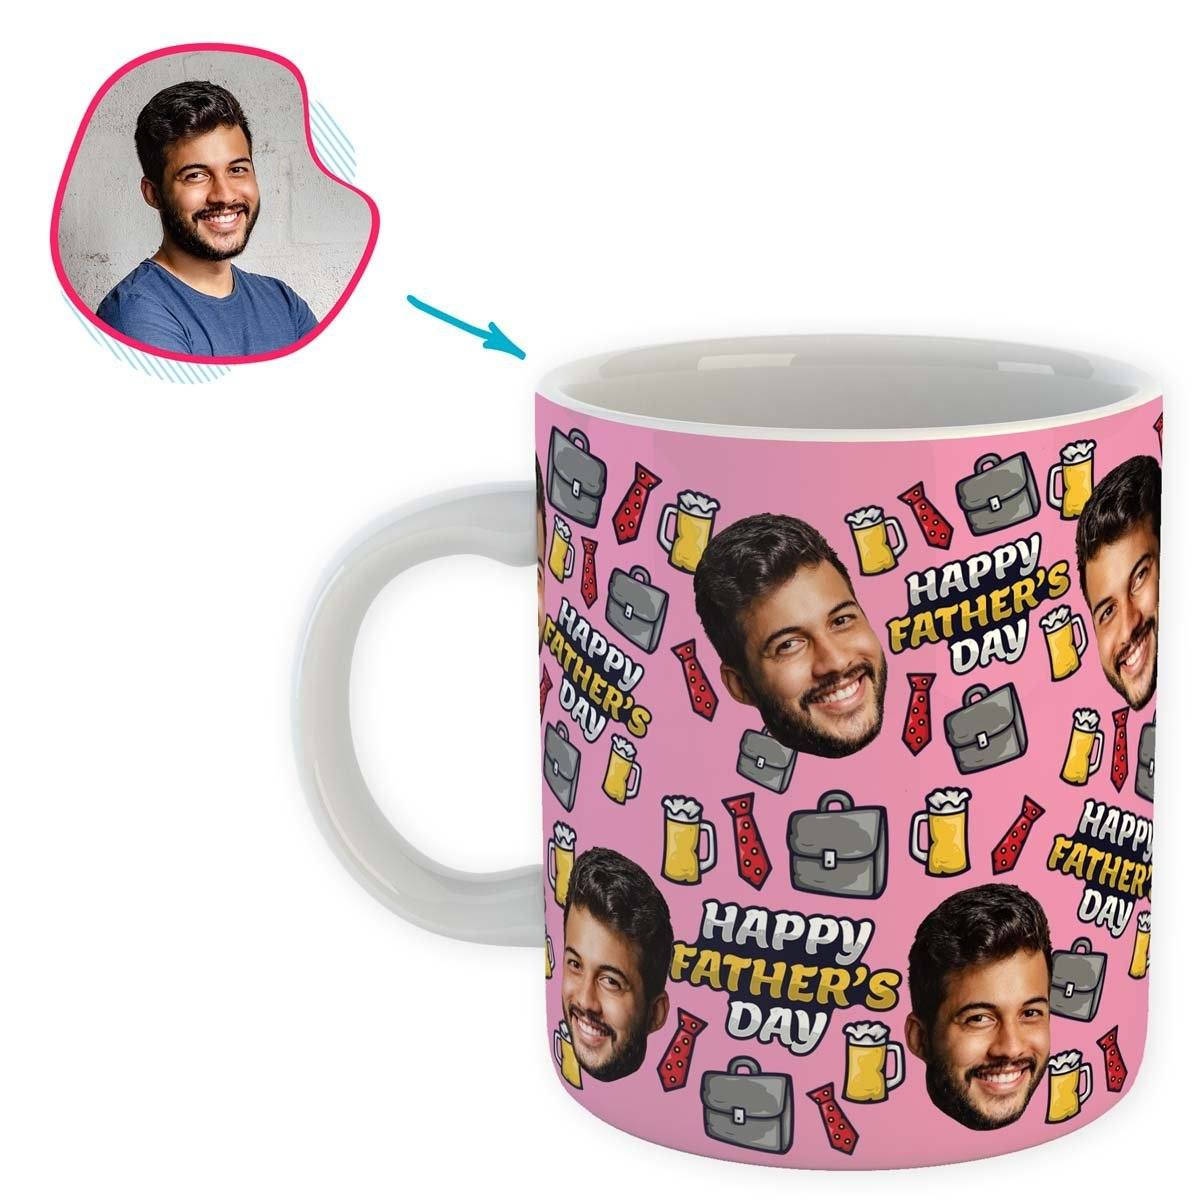 Pink Fathers Day personalized mug with photo of face printed on it